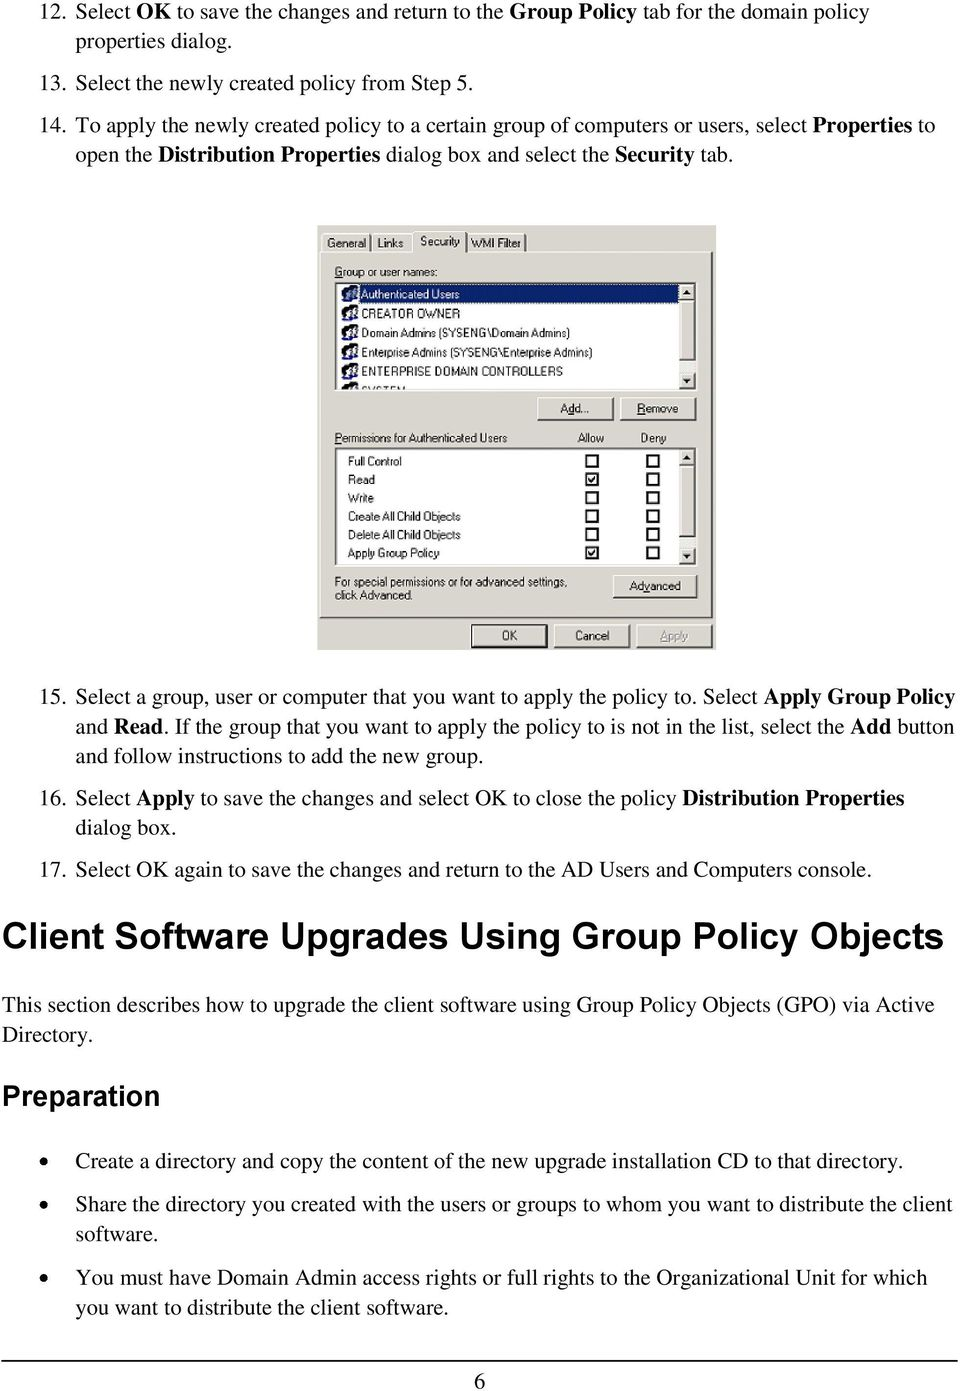 Select a group, user or computer that you want to apply the policy to. Select Apply Group Policy and Read.